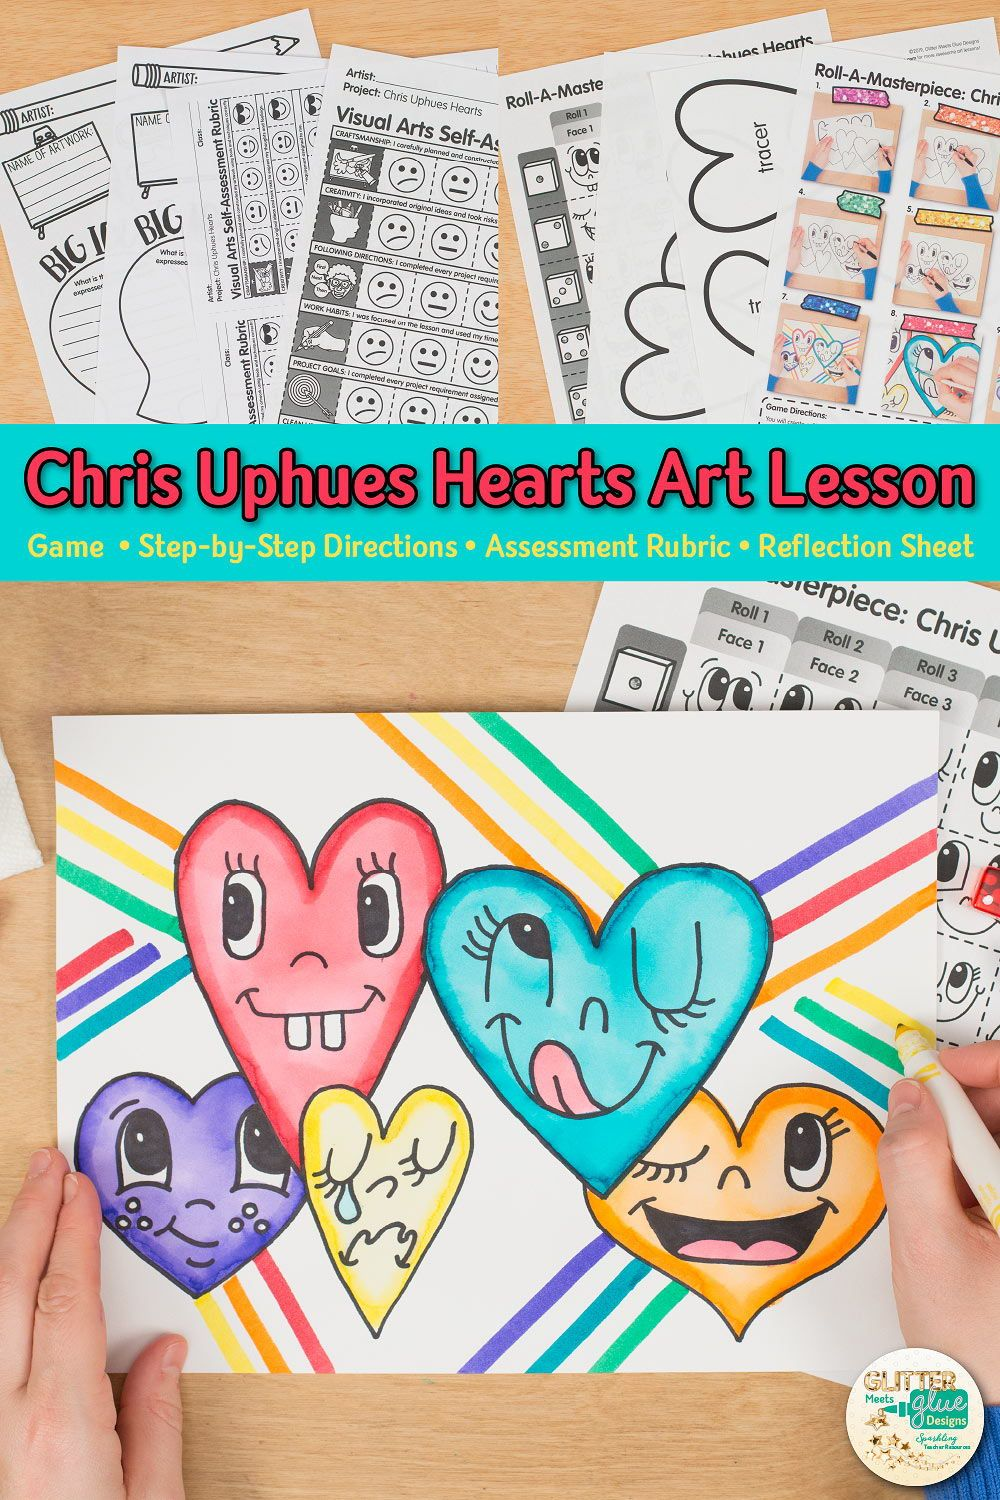 Photo of Chris Uphues Hearts Art Game